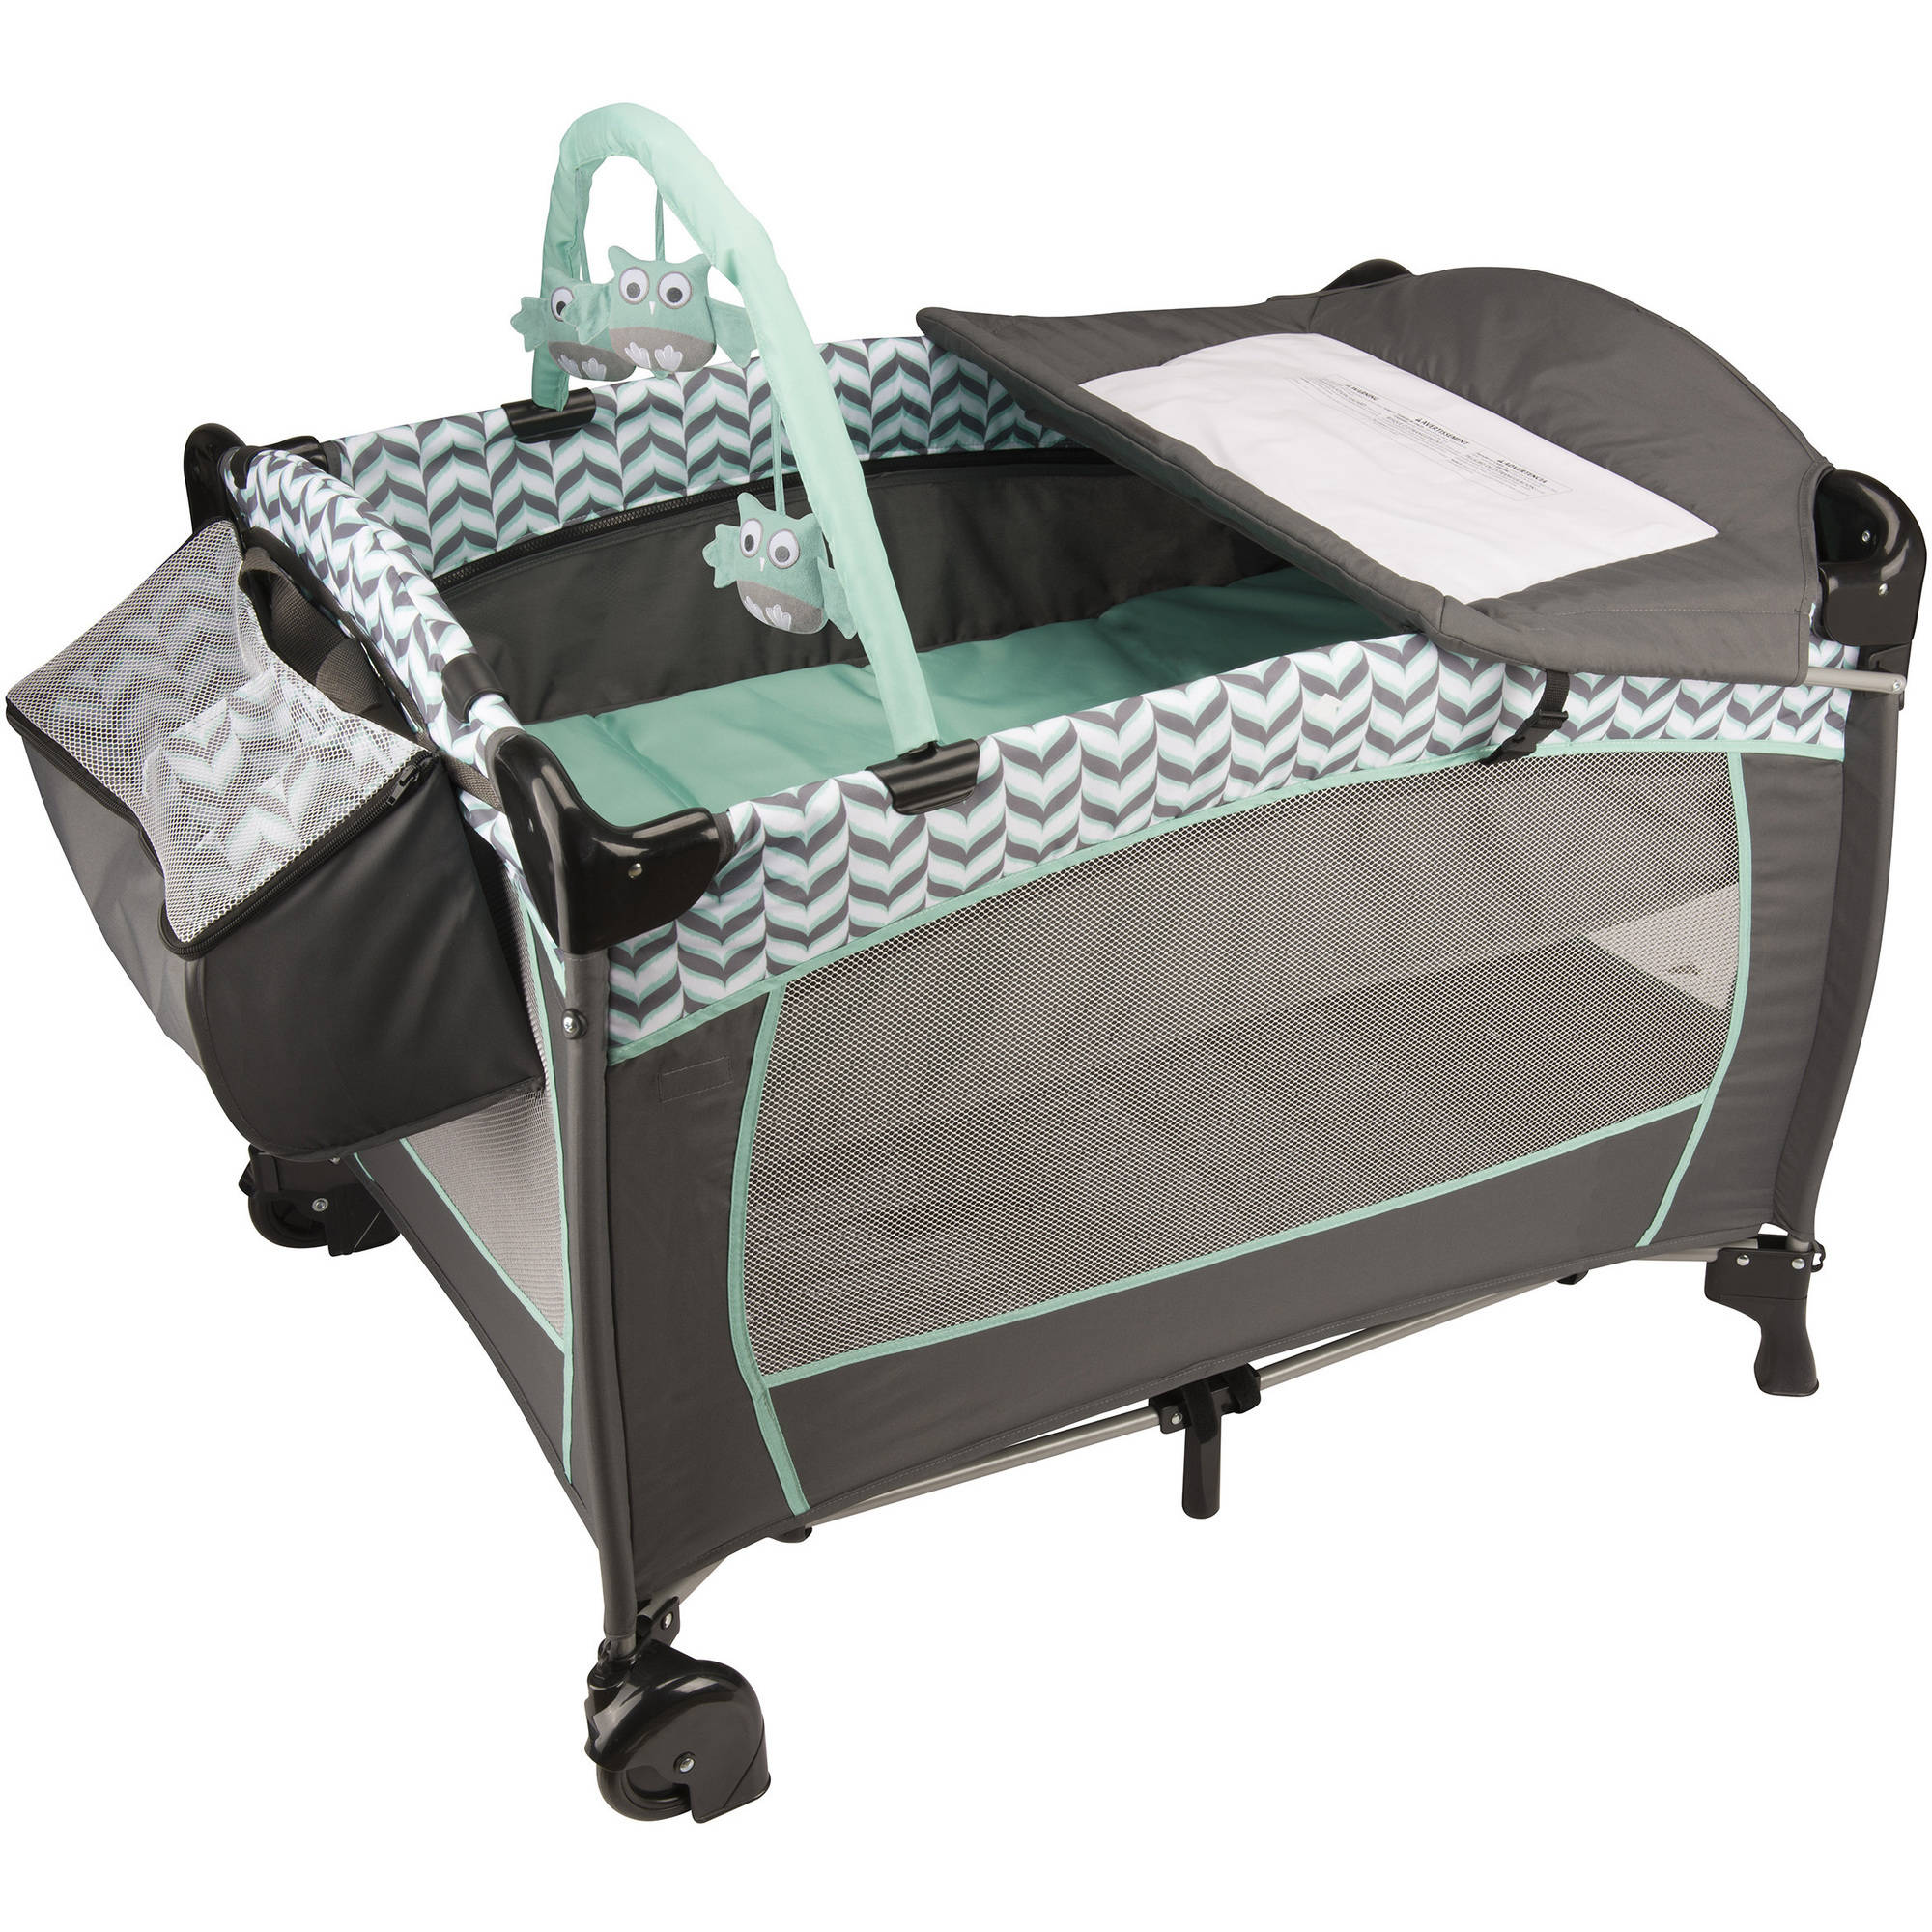 Evenflo Babysuite Deluxe Playard, Spearmint Spree